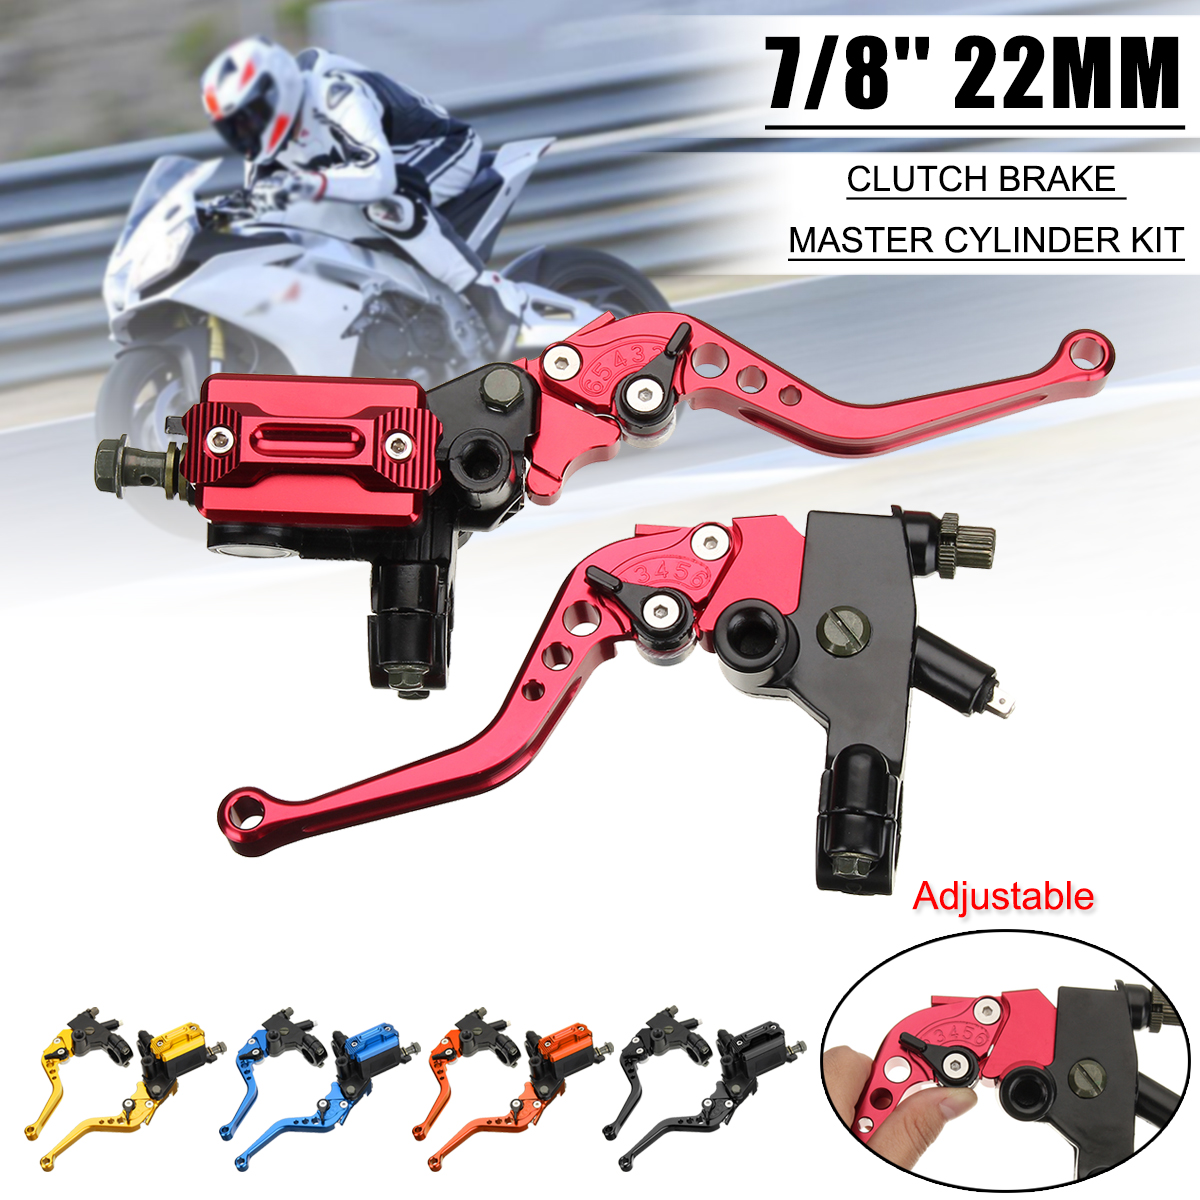 2pcs 7/8 CNC Universal Motorcycle Brake Clutch Master Cylinder Lever Cable Clutch Reservoir for Scooter Sport Street Dirt Bike 7 8 clutch lever